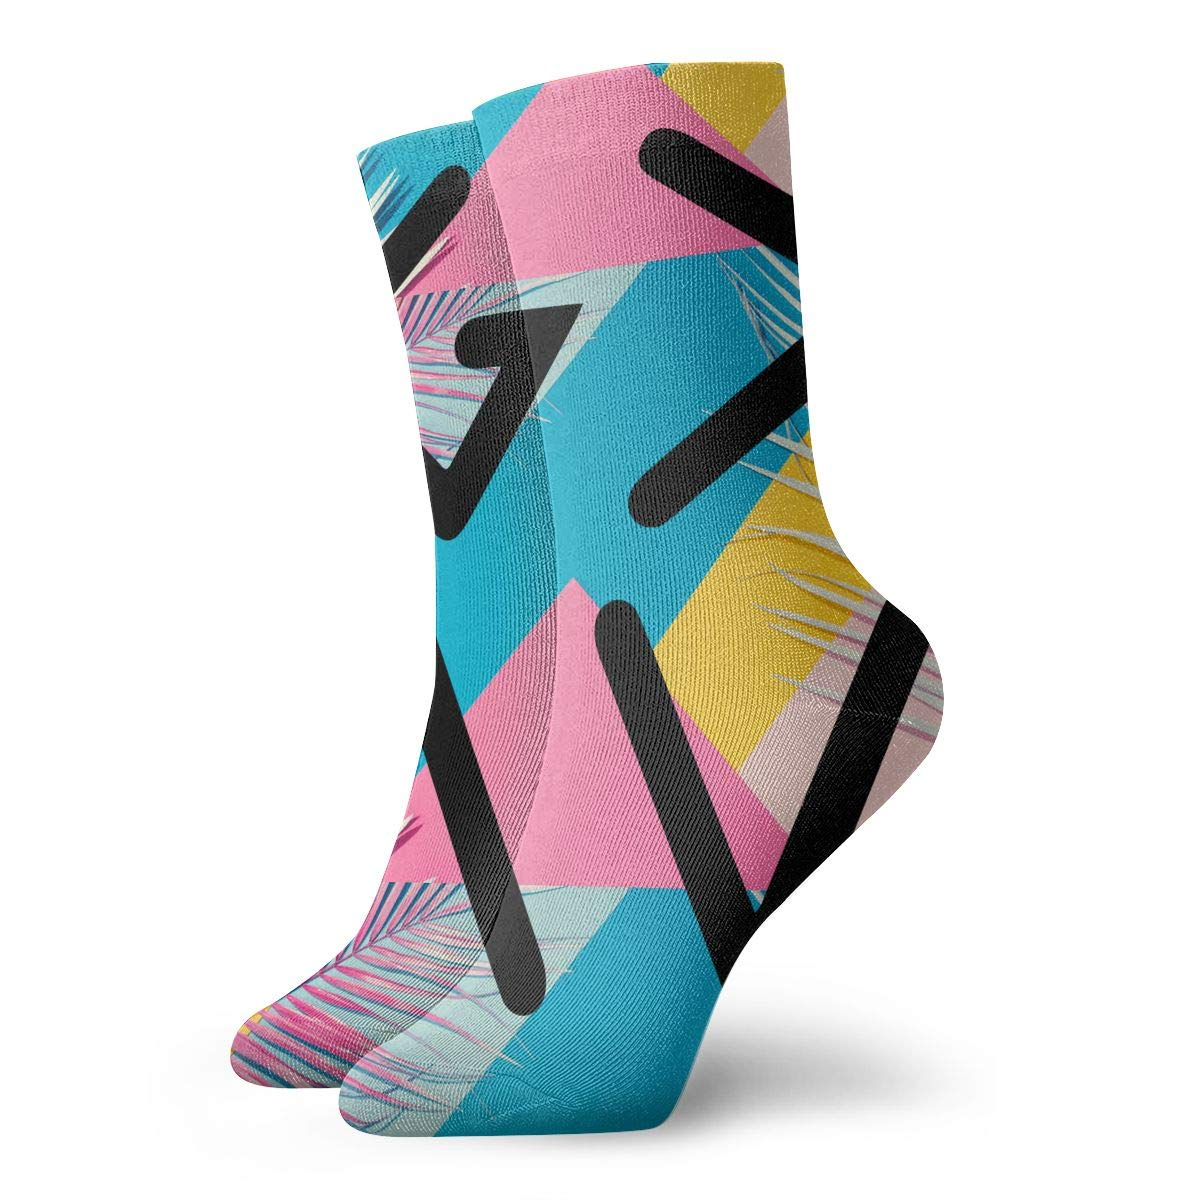 God Is Greater Than The Highs And Lows Fashion Dress Socks Short Socks Leisure Travel 11.8 Inch